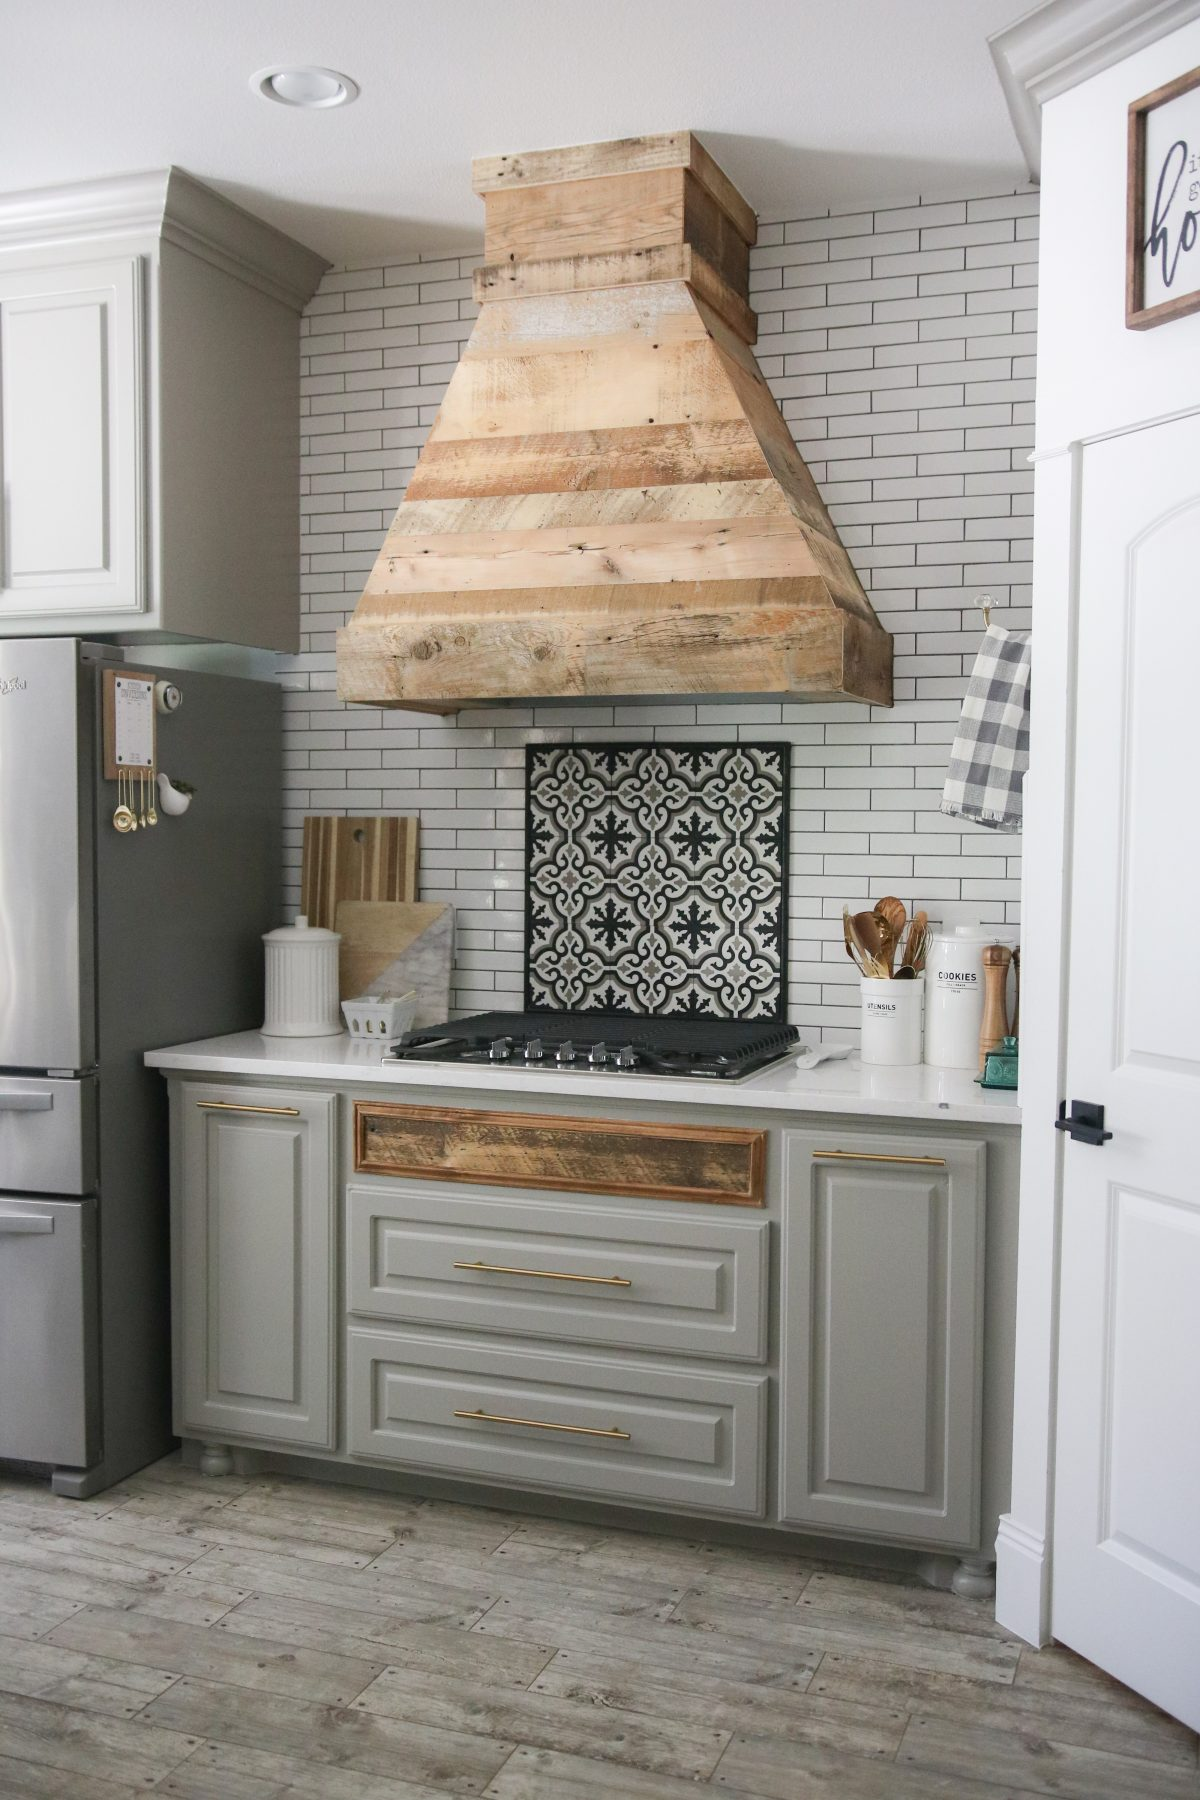 DIY Modern Farmhouse Vent Hood